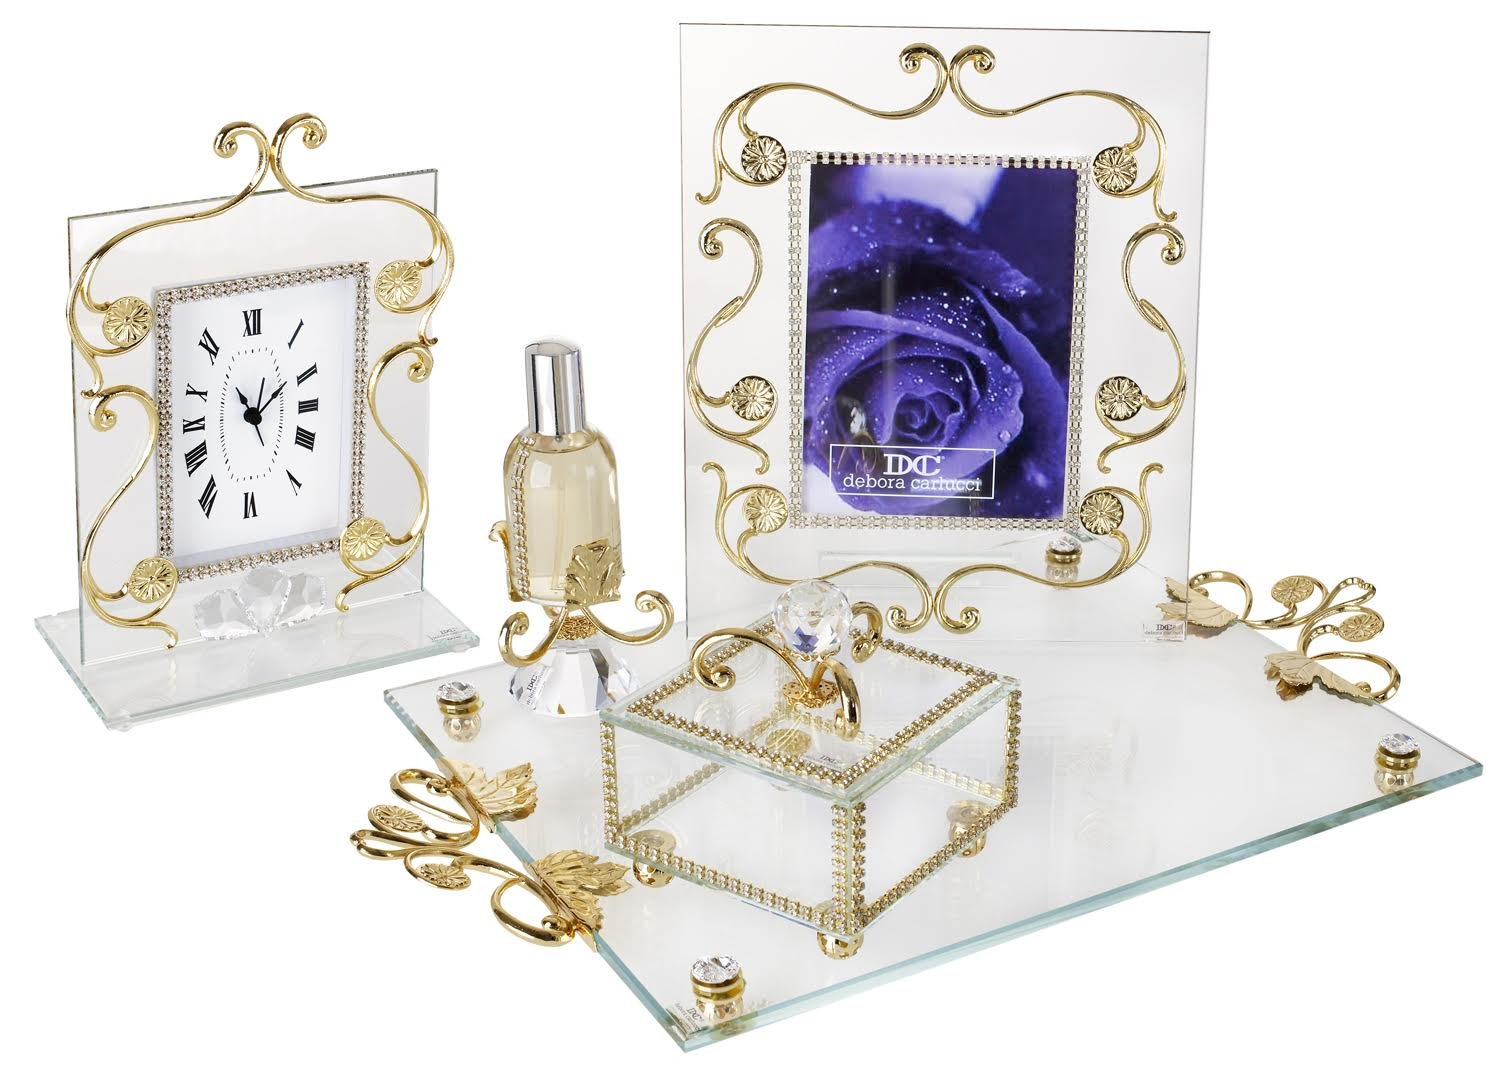 Italian 18kt Gold Plated Vanity Tray With Picture Frame Clock Tray 5 Piece Set by 5th Ave Store (Image #1)